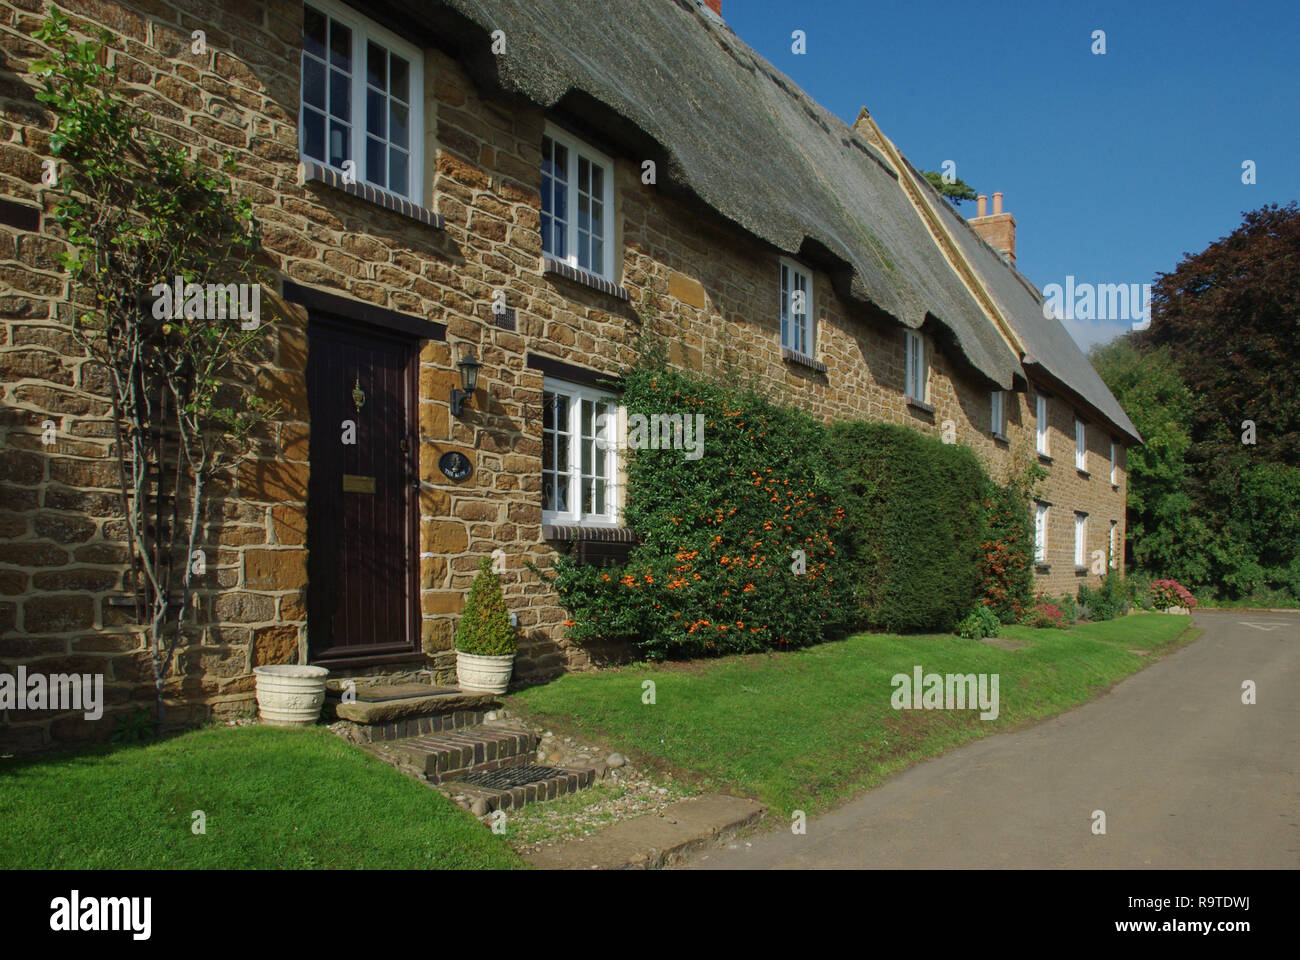 Row of picturesque stone built thatched cottages in the village of Ashby St Ledgers, Northamptonshire, UK Stock Photo